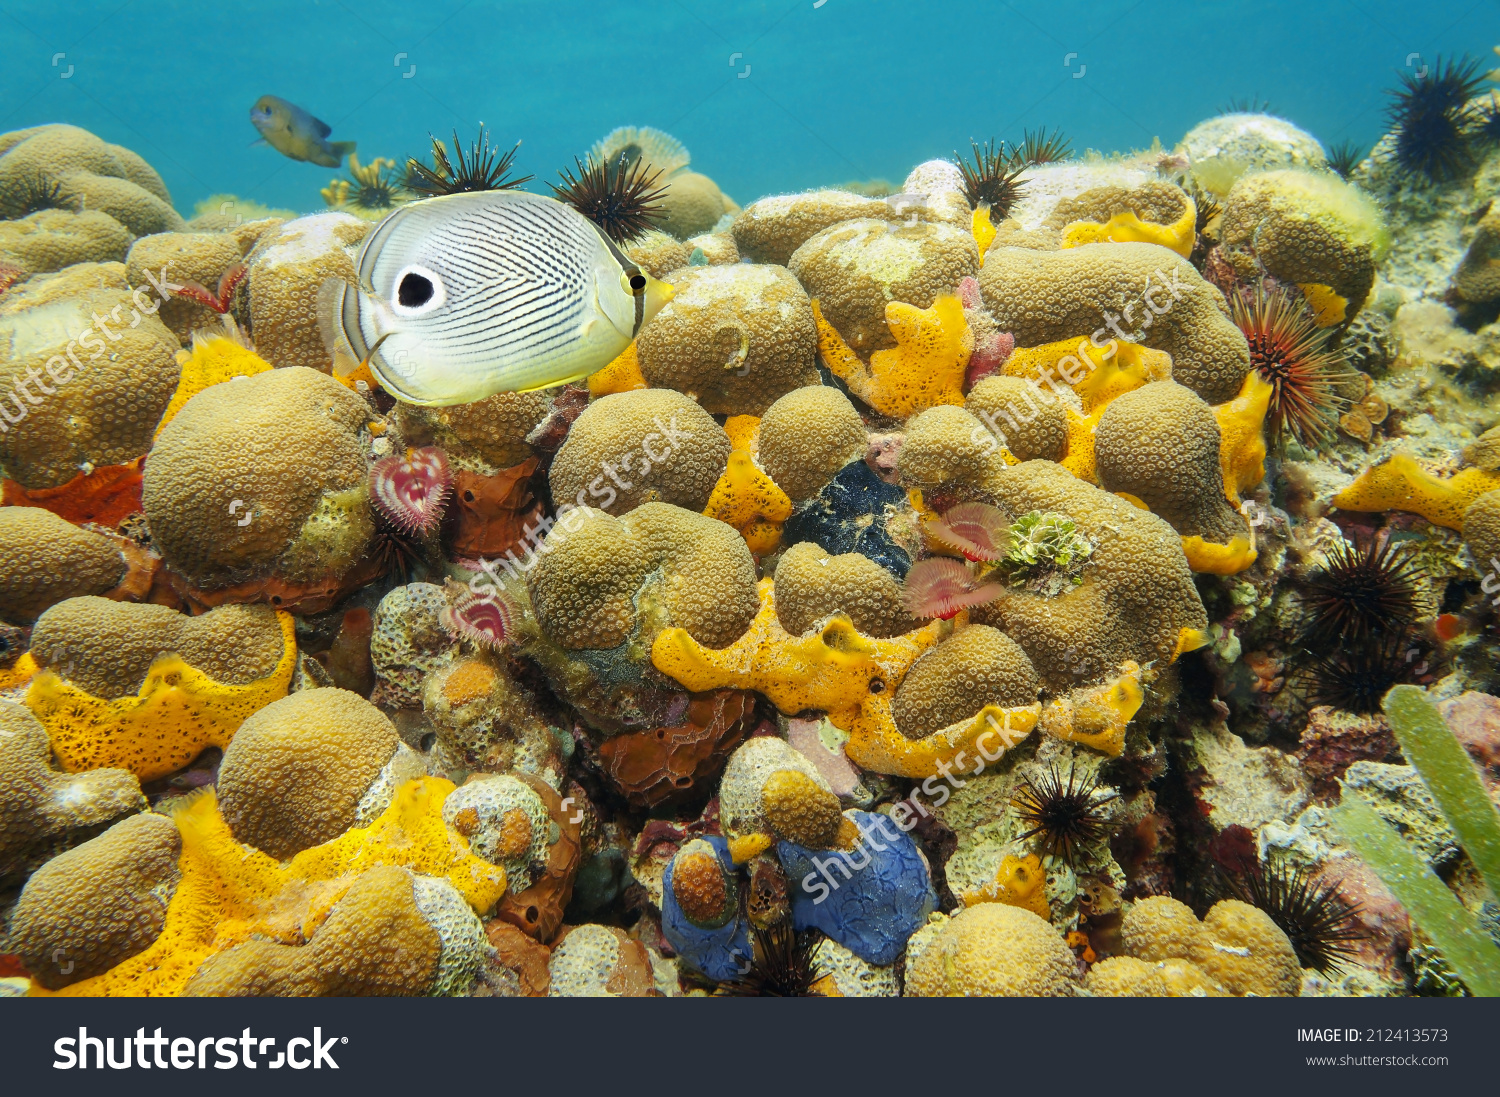 Colorful Coral Reef Under Water With Sea Sponge, Fan Worm, Urchin.